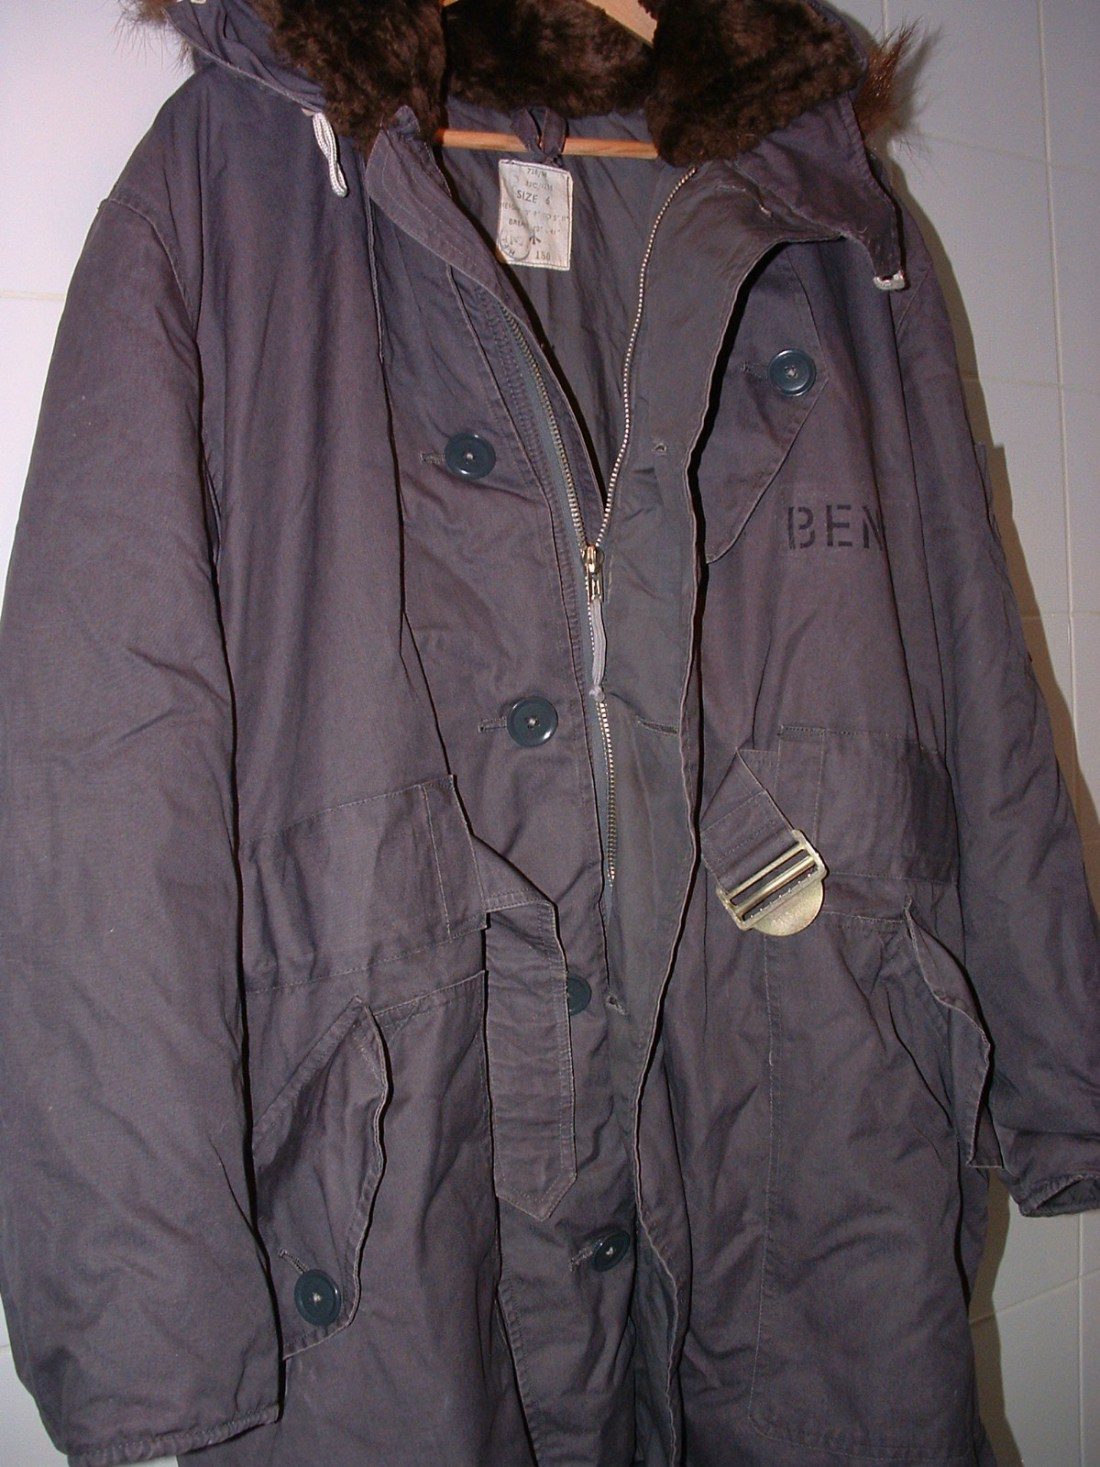 An original cold weather parka used by the RAF.